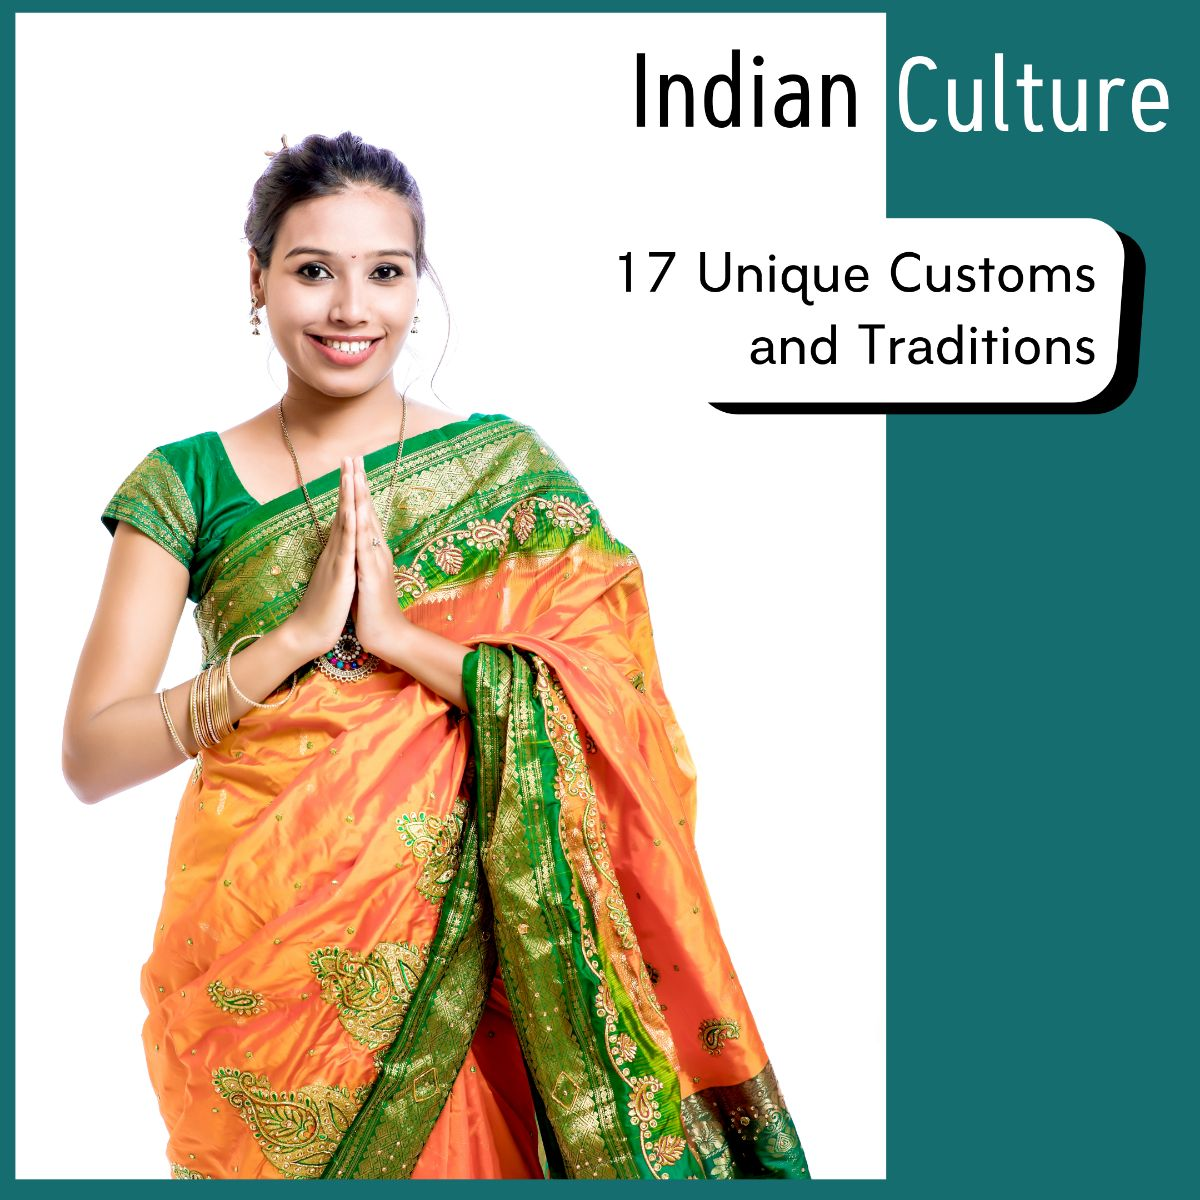 Indian Culture- What are our 17 Unique Customs and Traditions and why we follow them